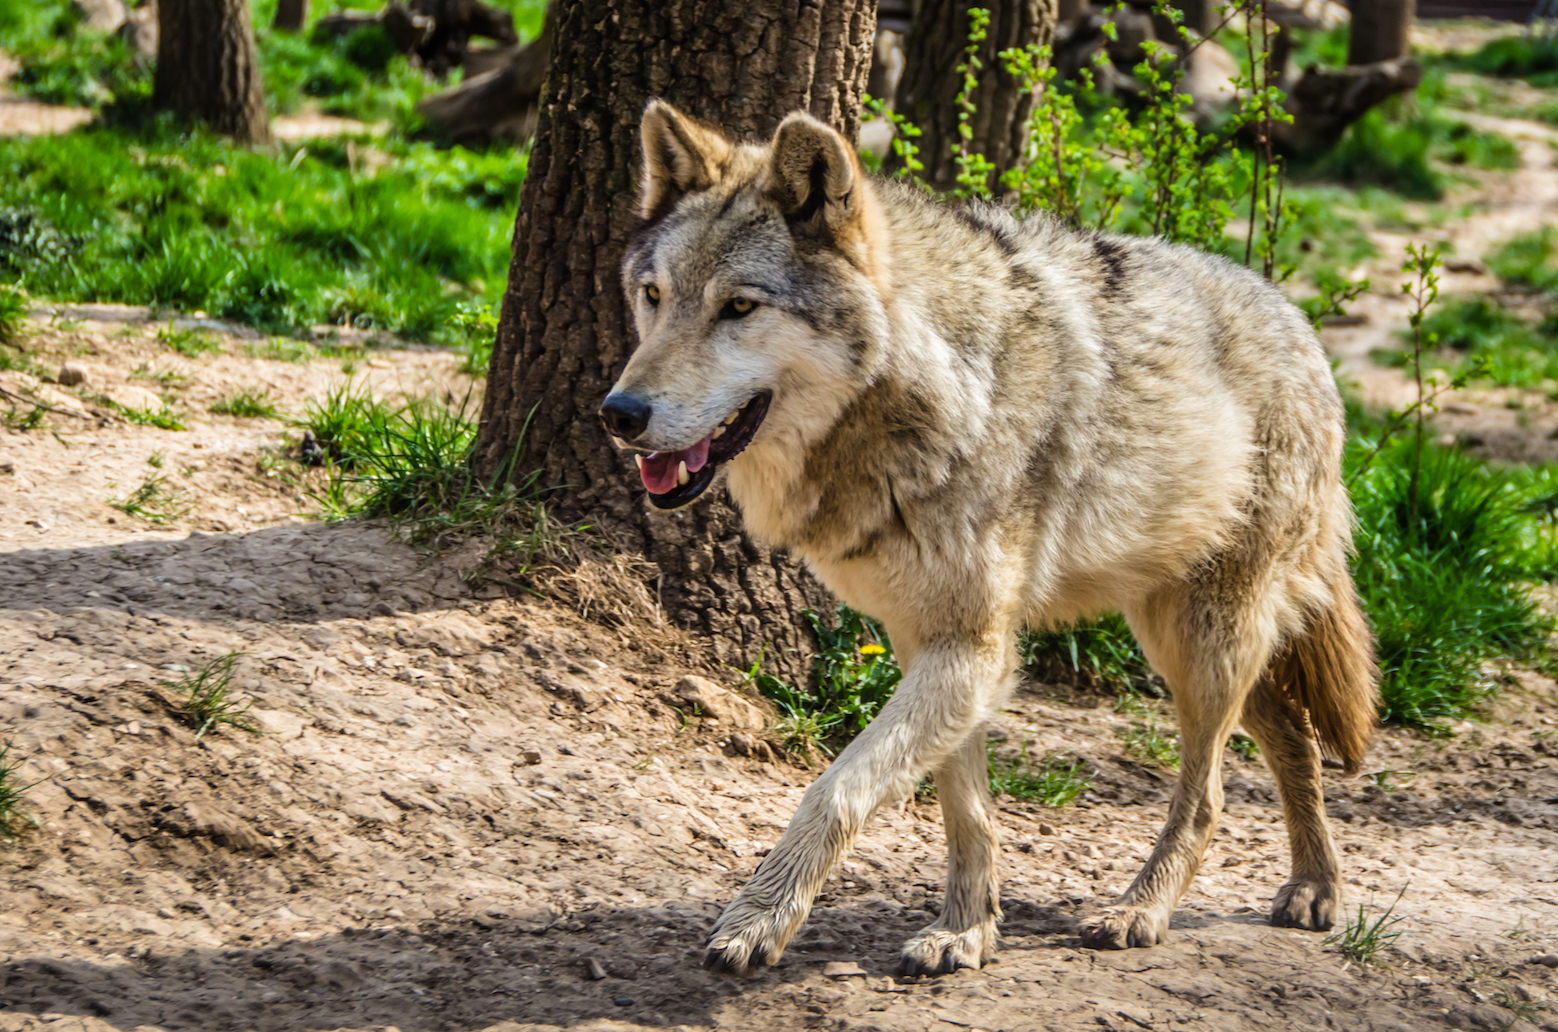 A recent study has found that wolves are flourishing in the radioactive, human-free Chernobyl Exclusion Zone (CEZ).